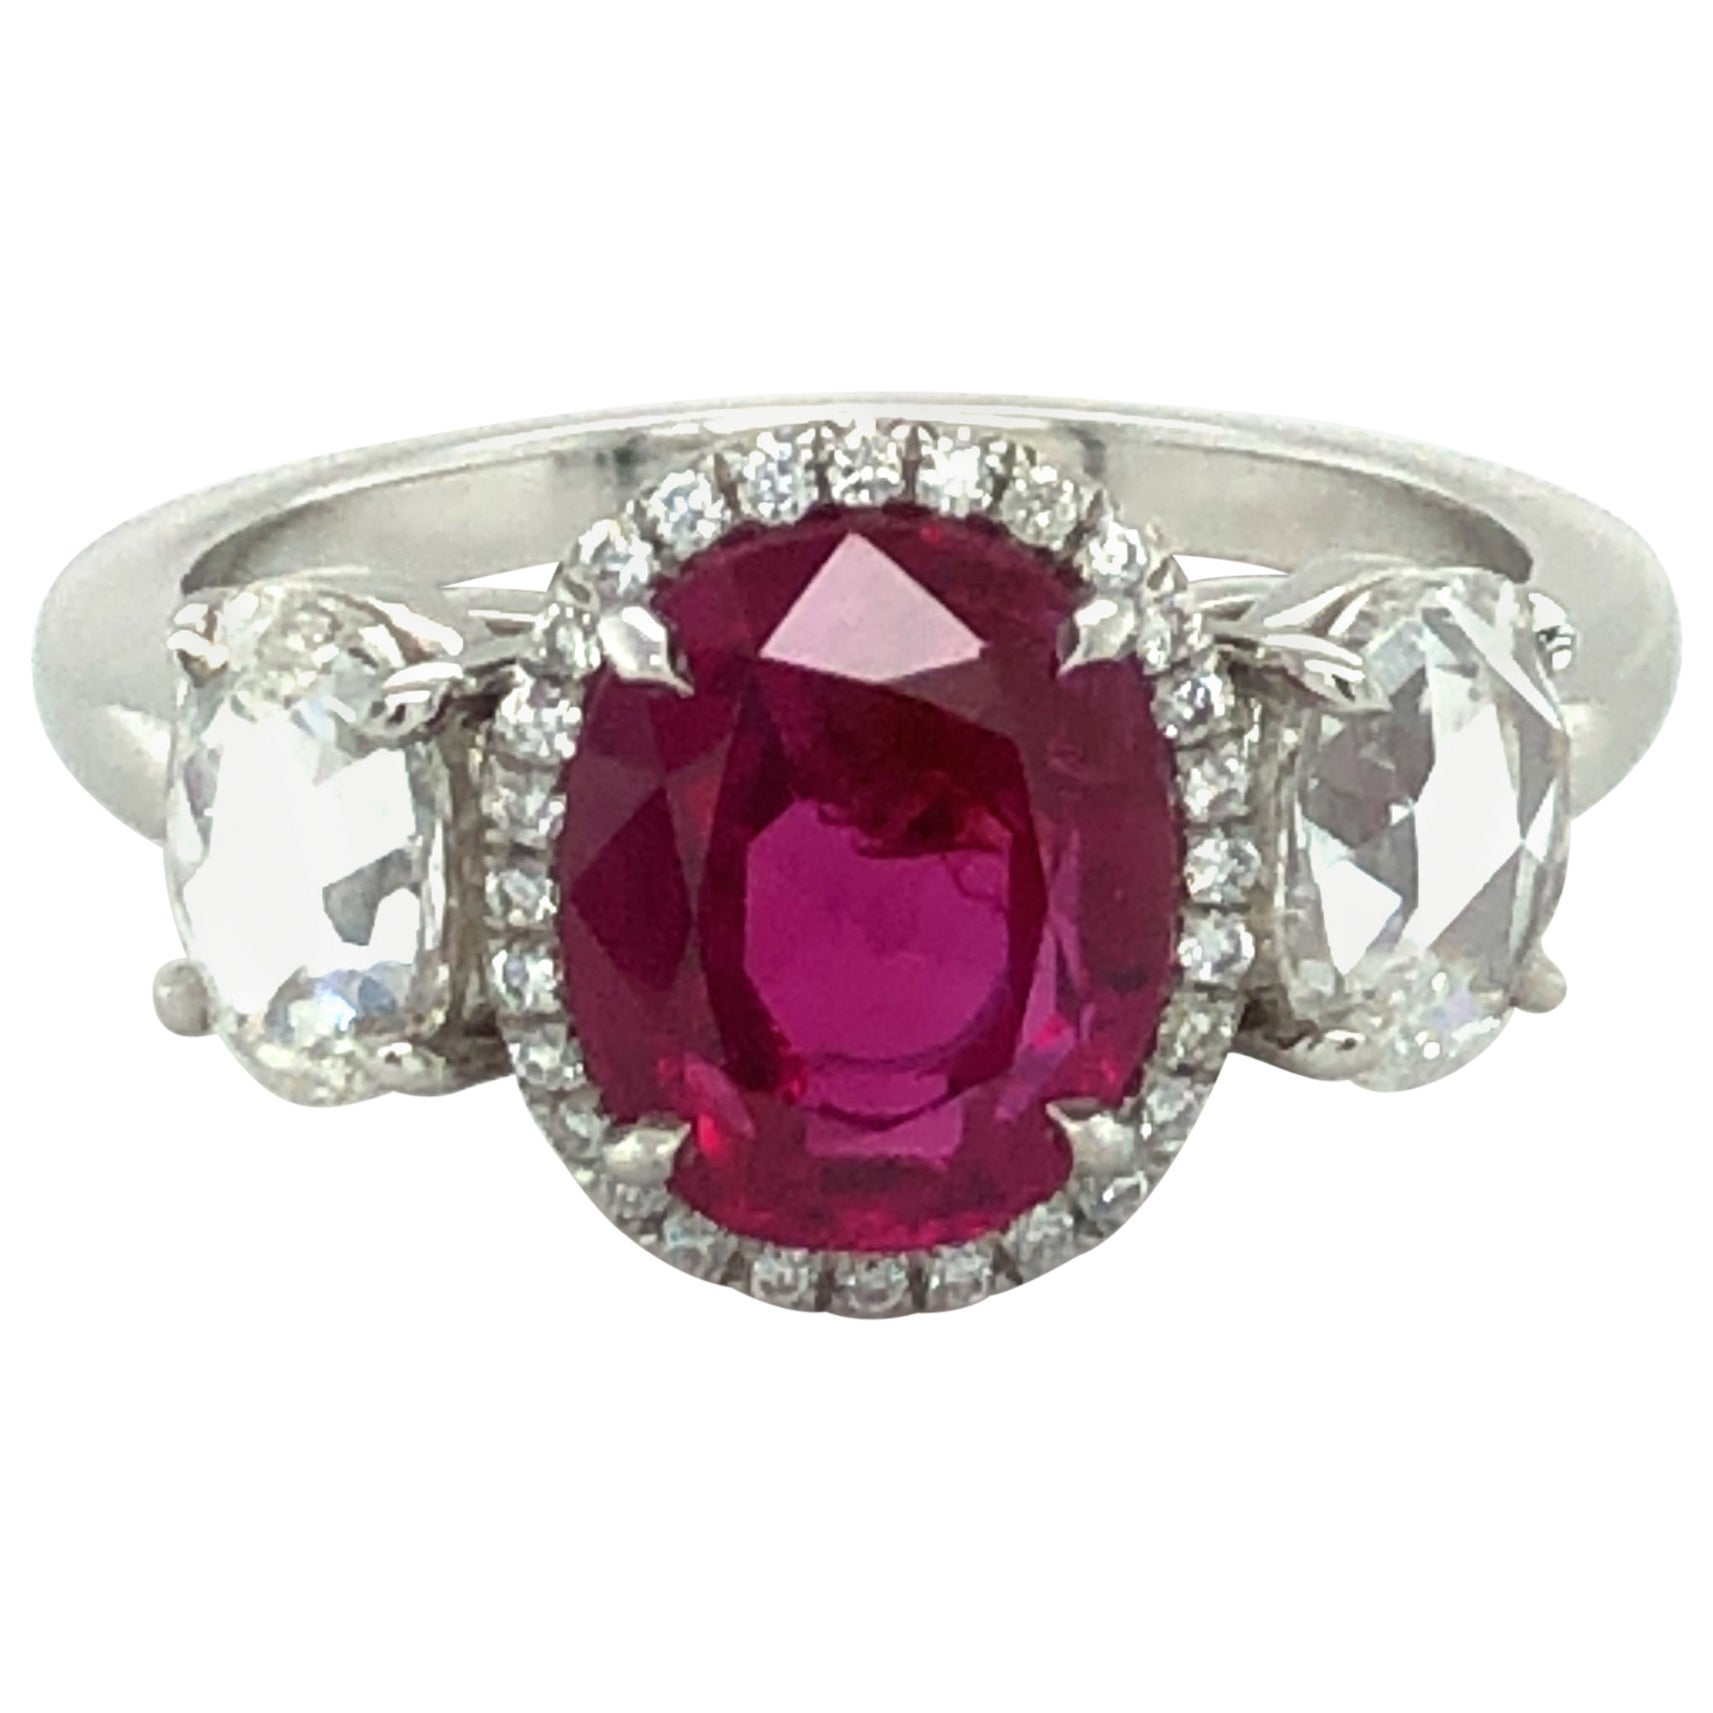 Superb 2.73 Carat Burma Ruby and Diamond Ring in Platinum 950